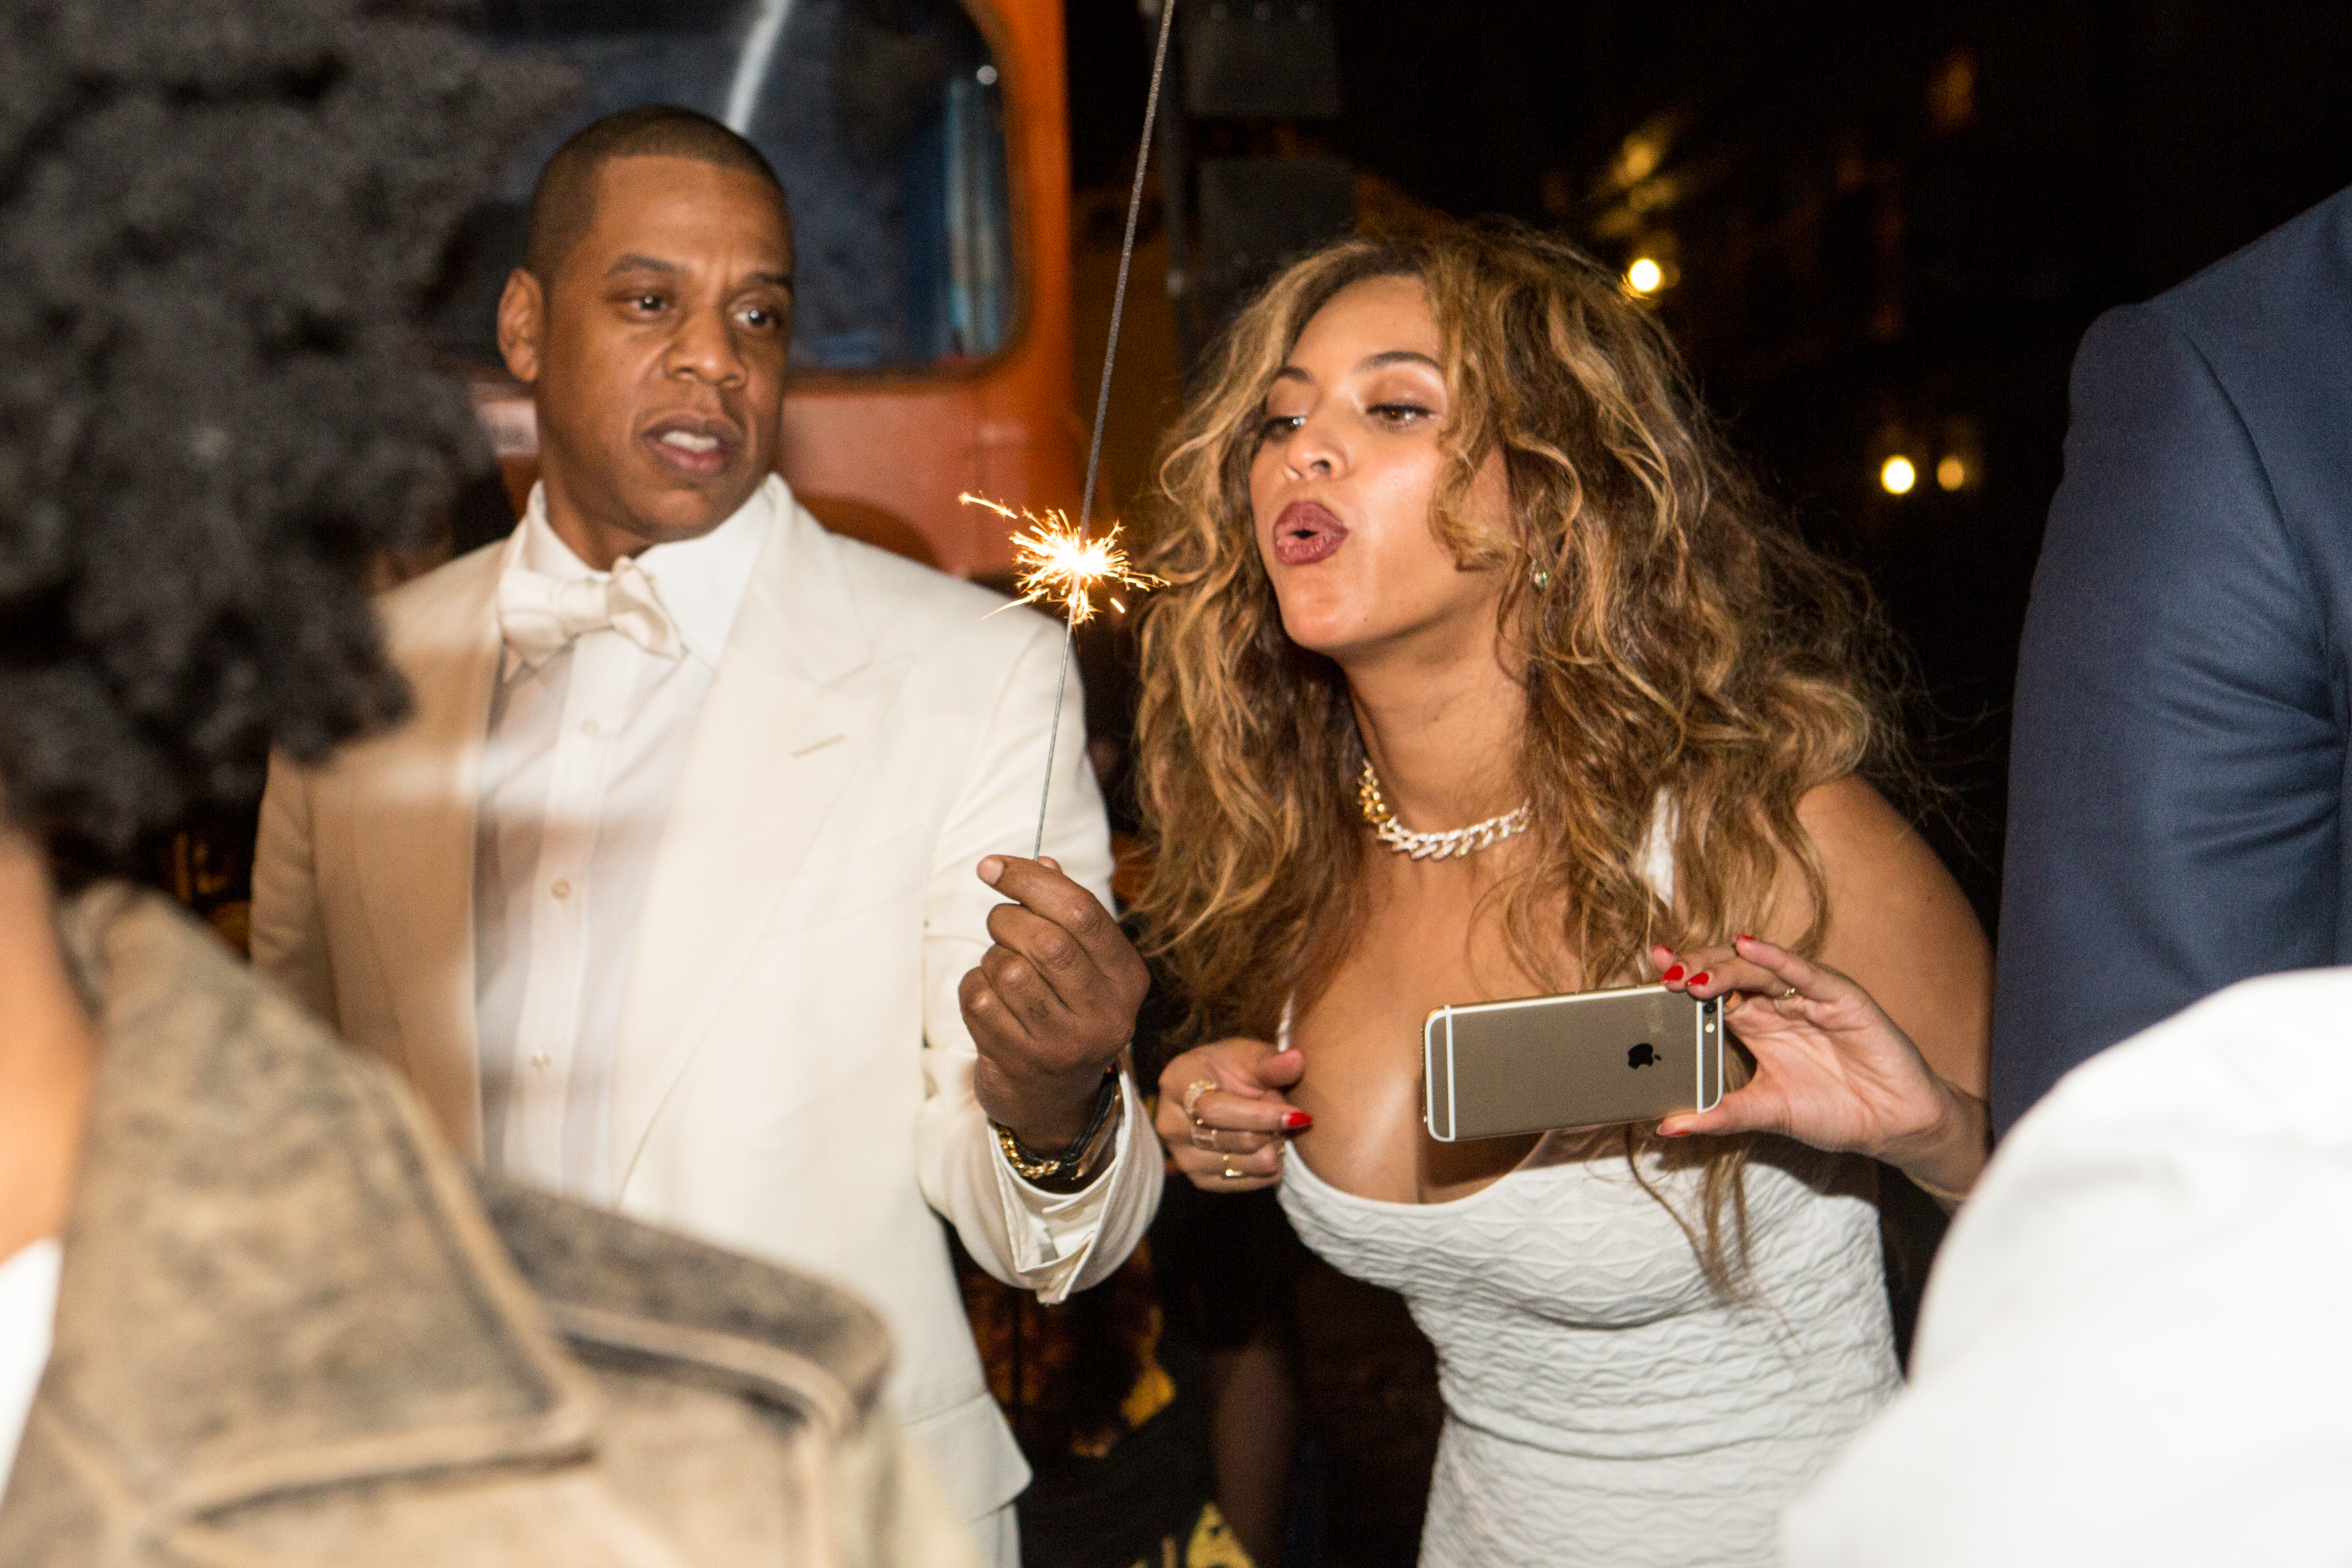 Jay Z and Beyonce Knowles on November 16, 2014 in New Orleans, Louisiana. (Photo by Josh Brasted/WireImage)